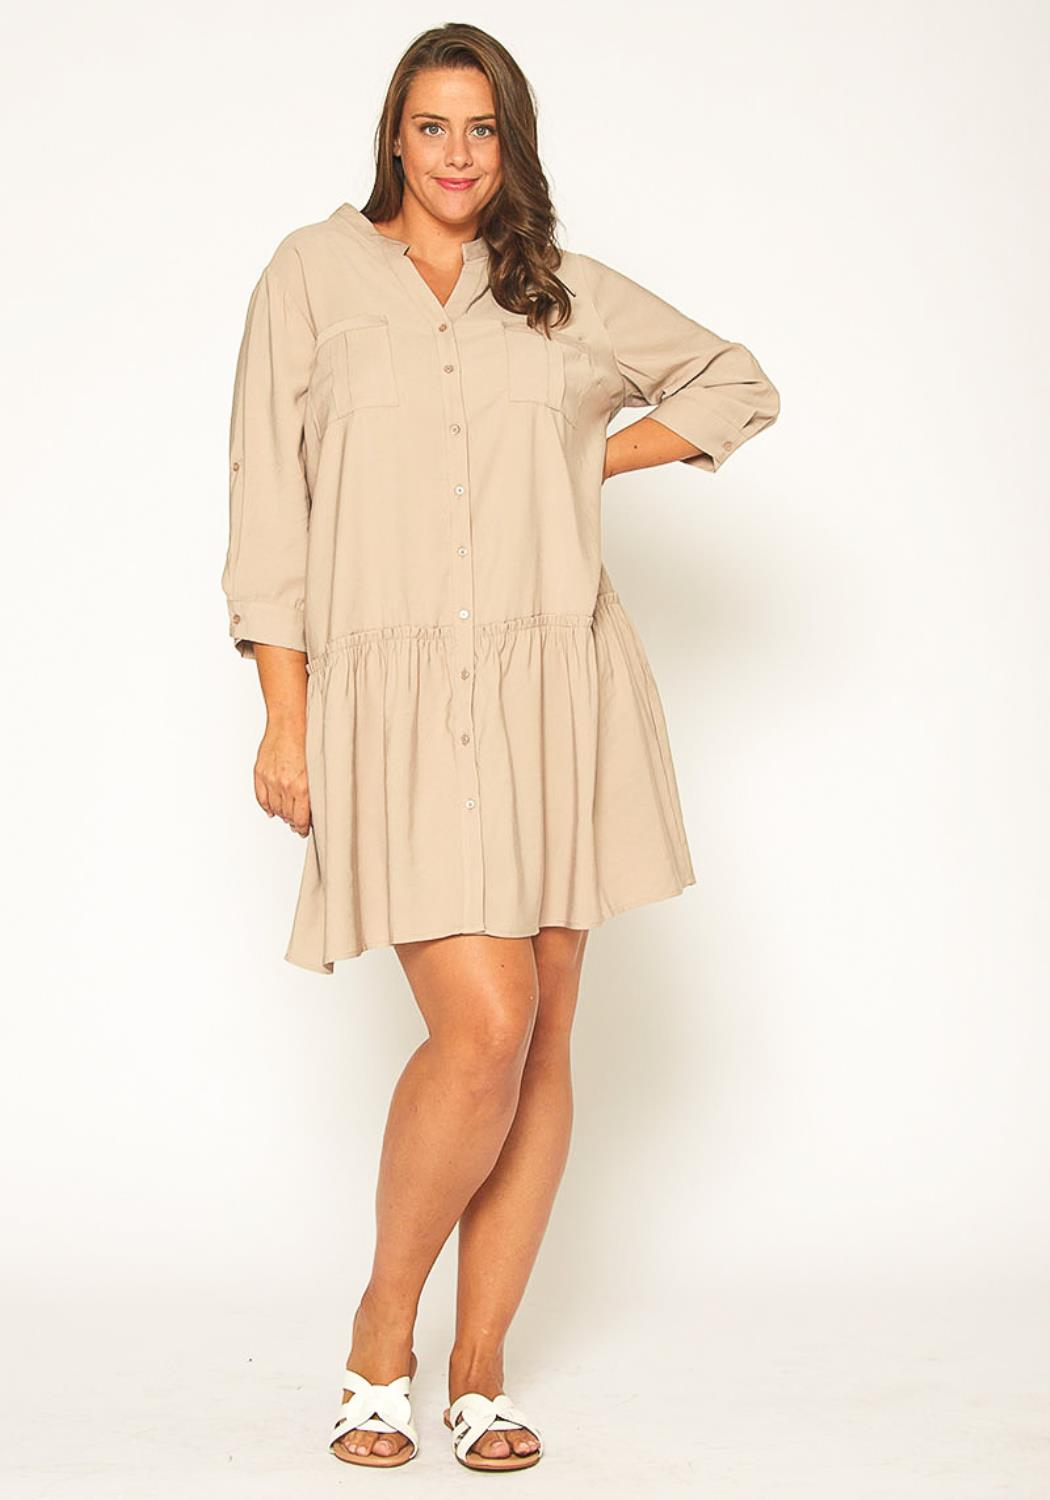 Pleione Plus Size Button Up Tunic Shirt Dress